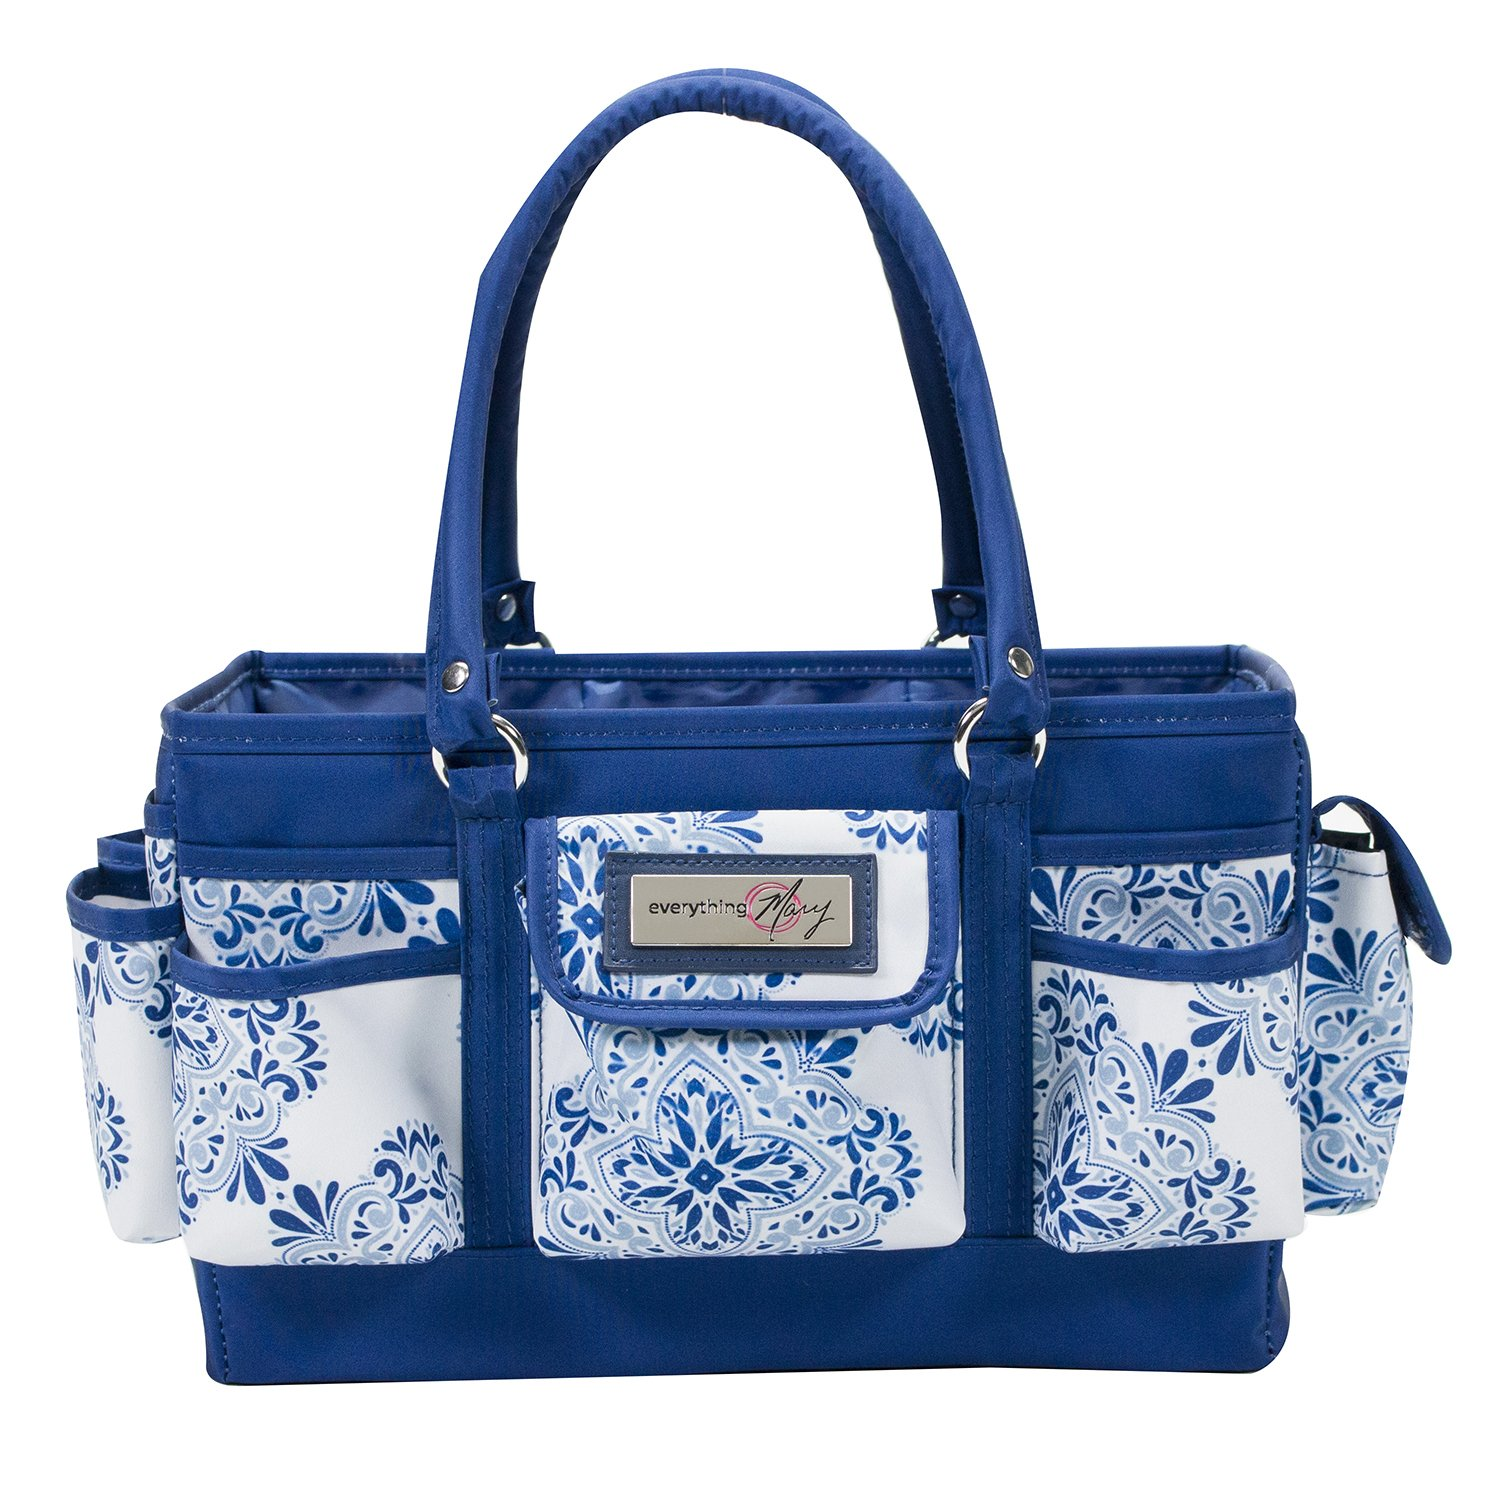 Everything Mary Craft Deluxe Store & Tote, Blue & White